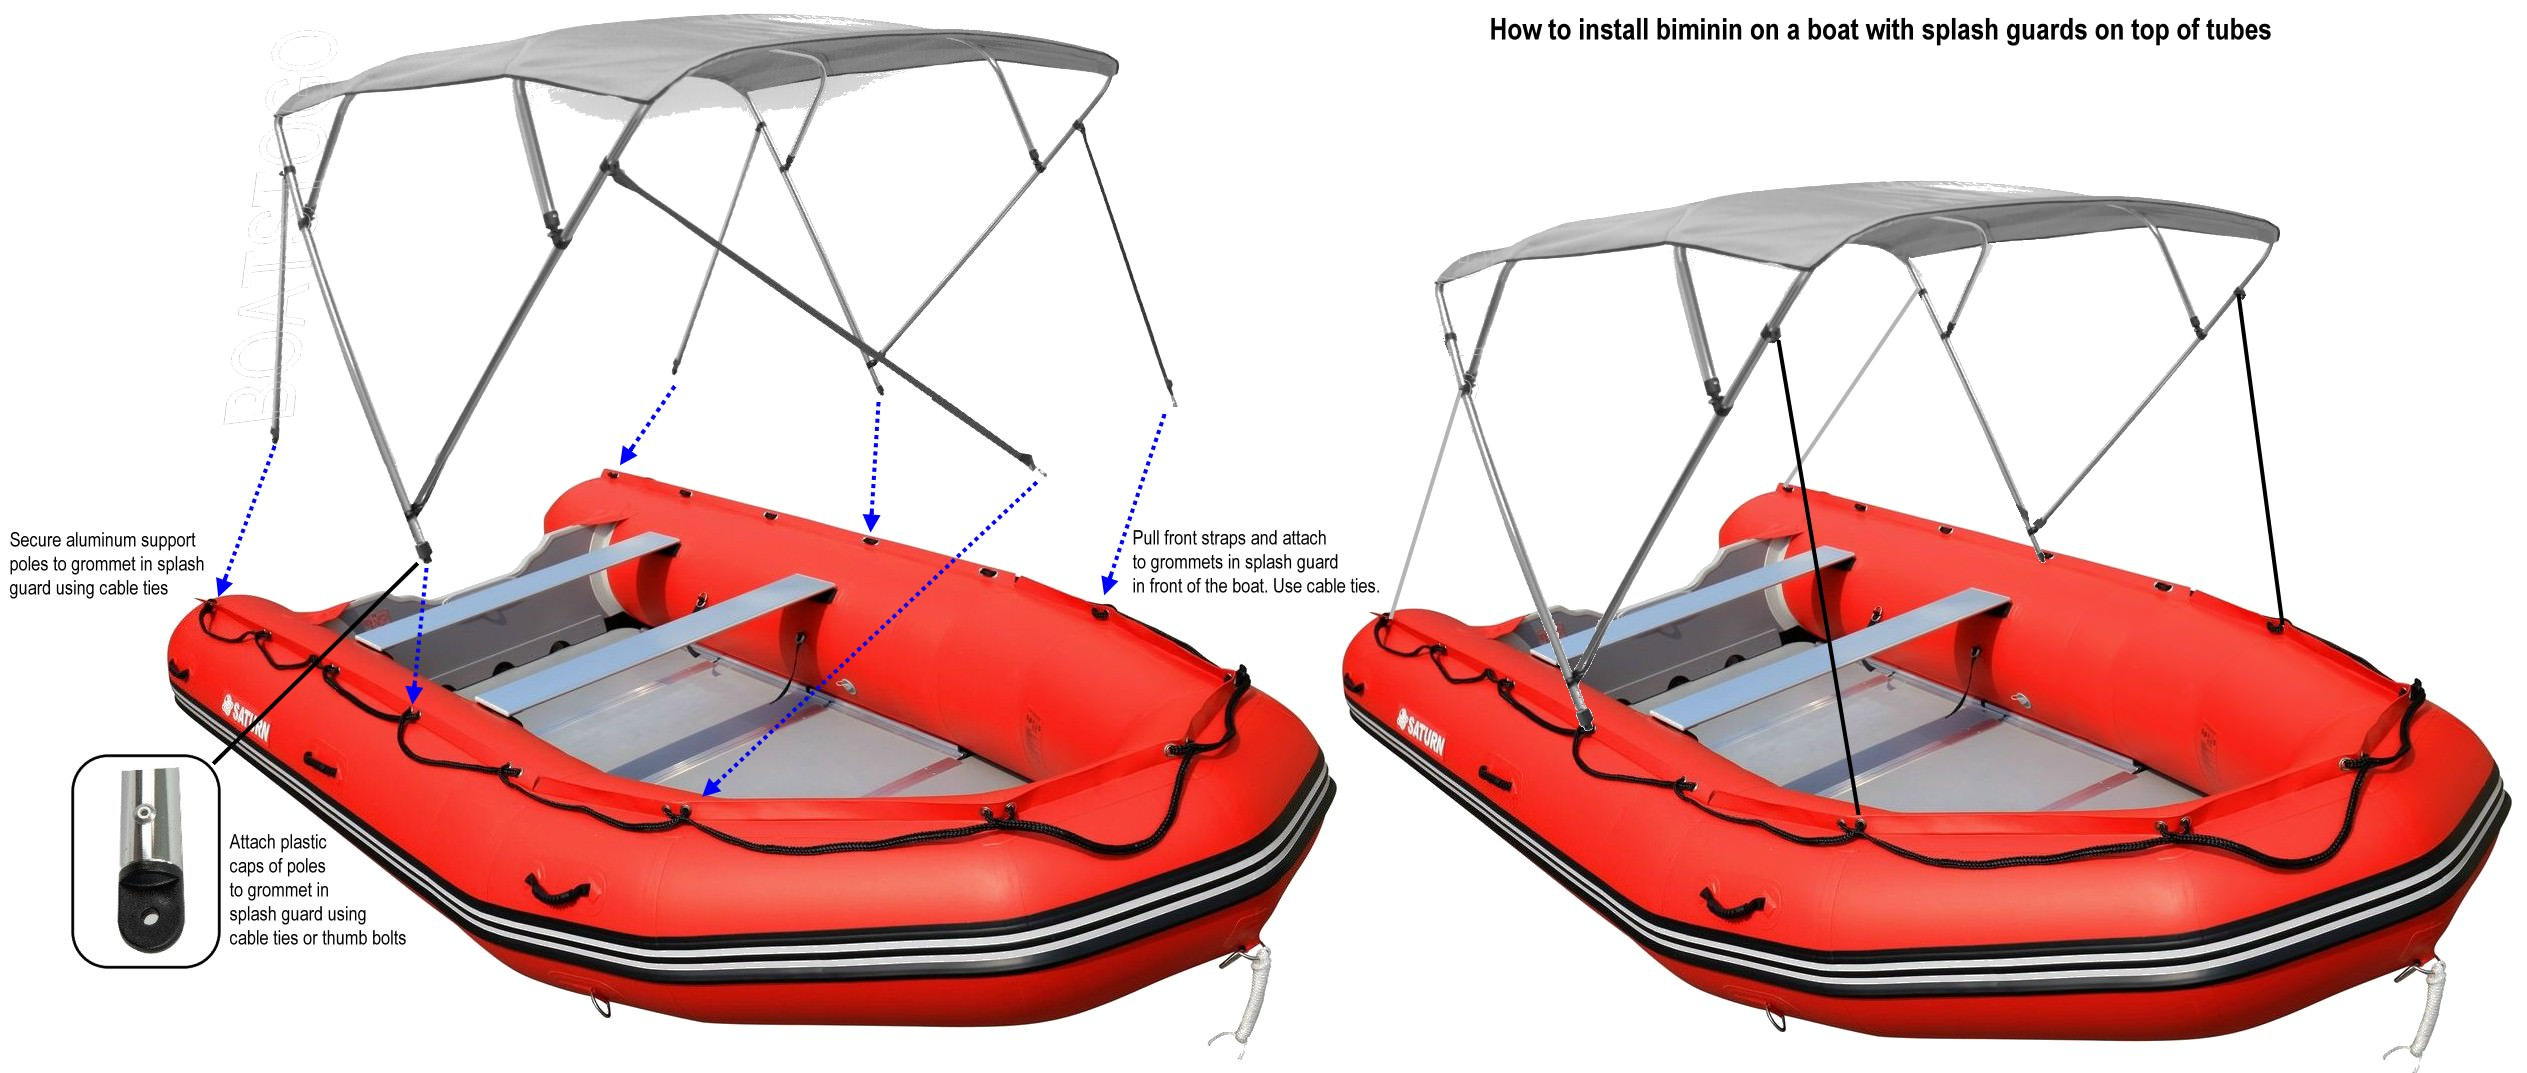 How to attach bimini to boat with splash guards on top of tubes